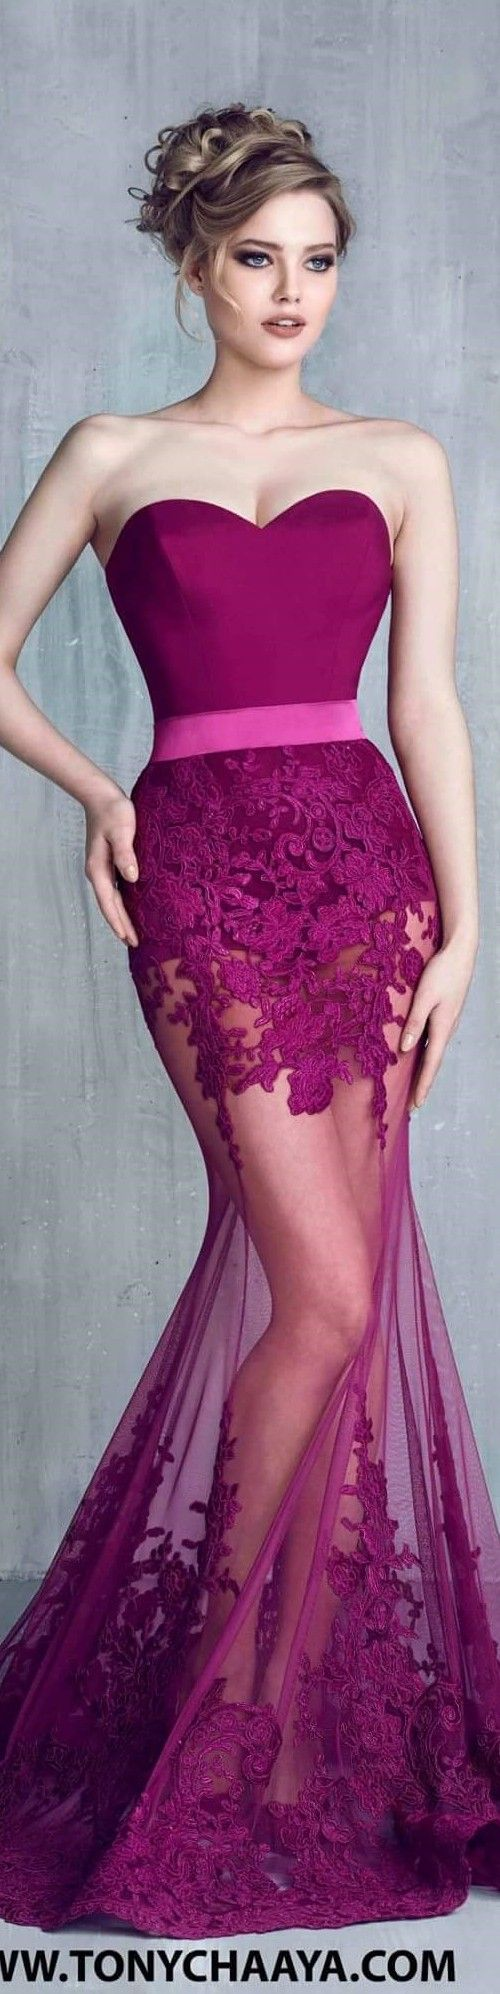 Tony Chaaya couture 2016 women fashion outfit clothing style apparel @roressclothes closet ideas Más